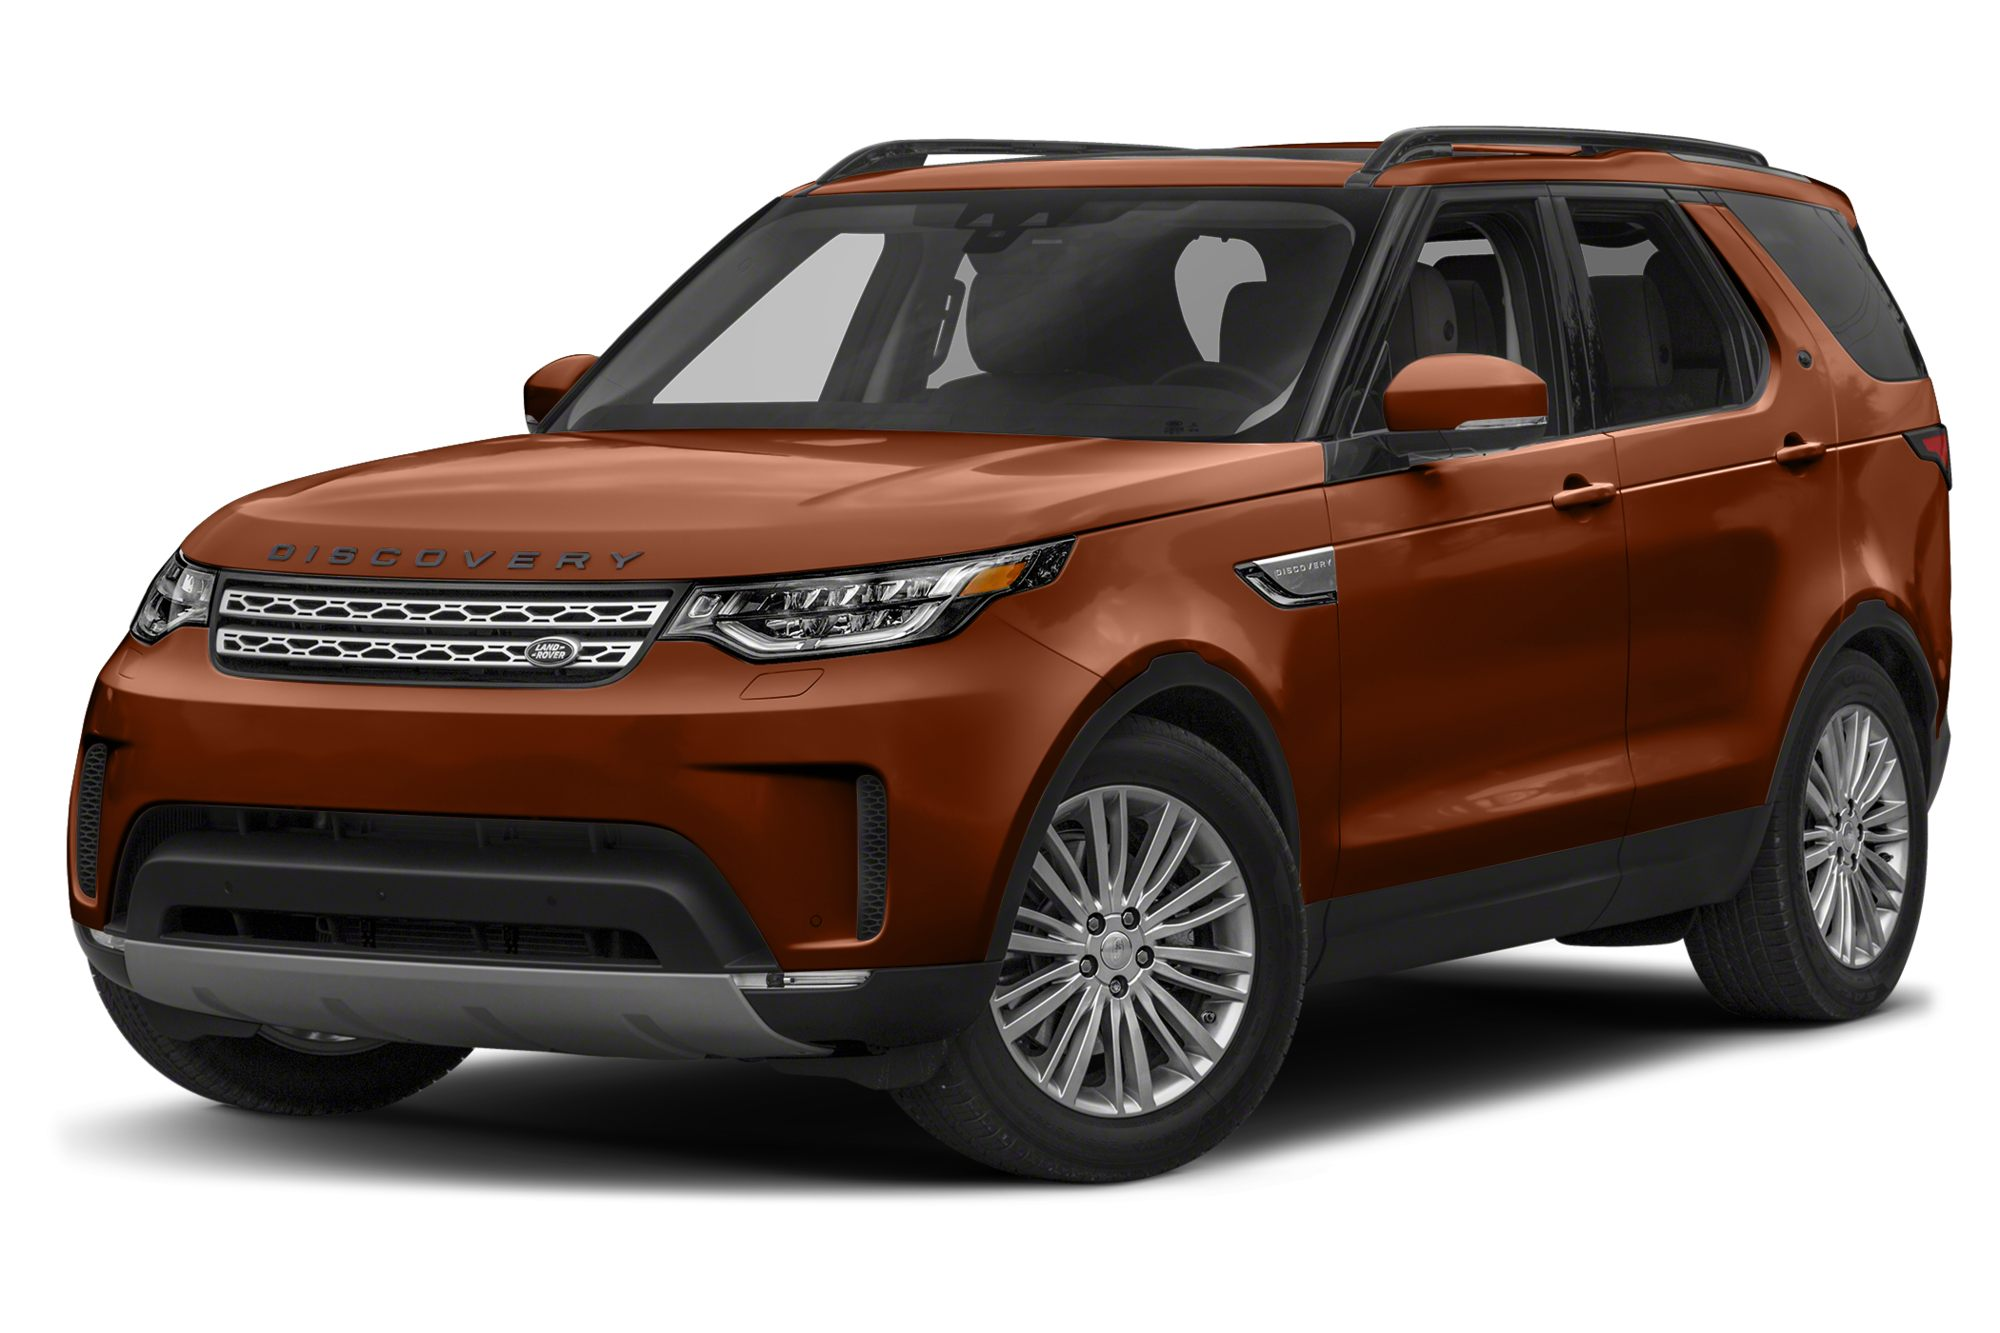 land-rover-discovery-2018-exterior-front-three-quarter-oem